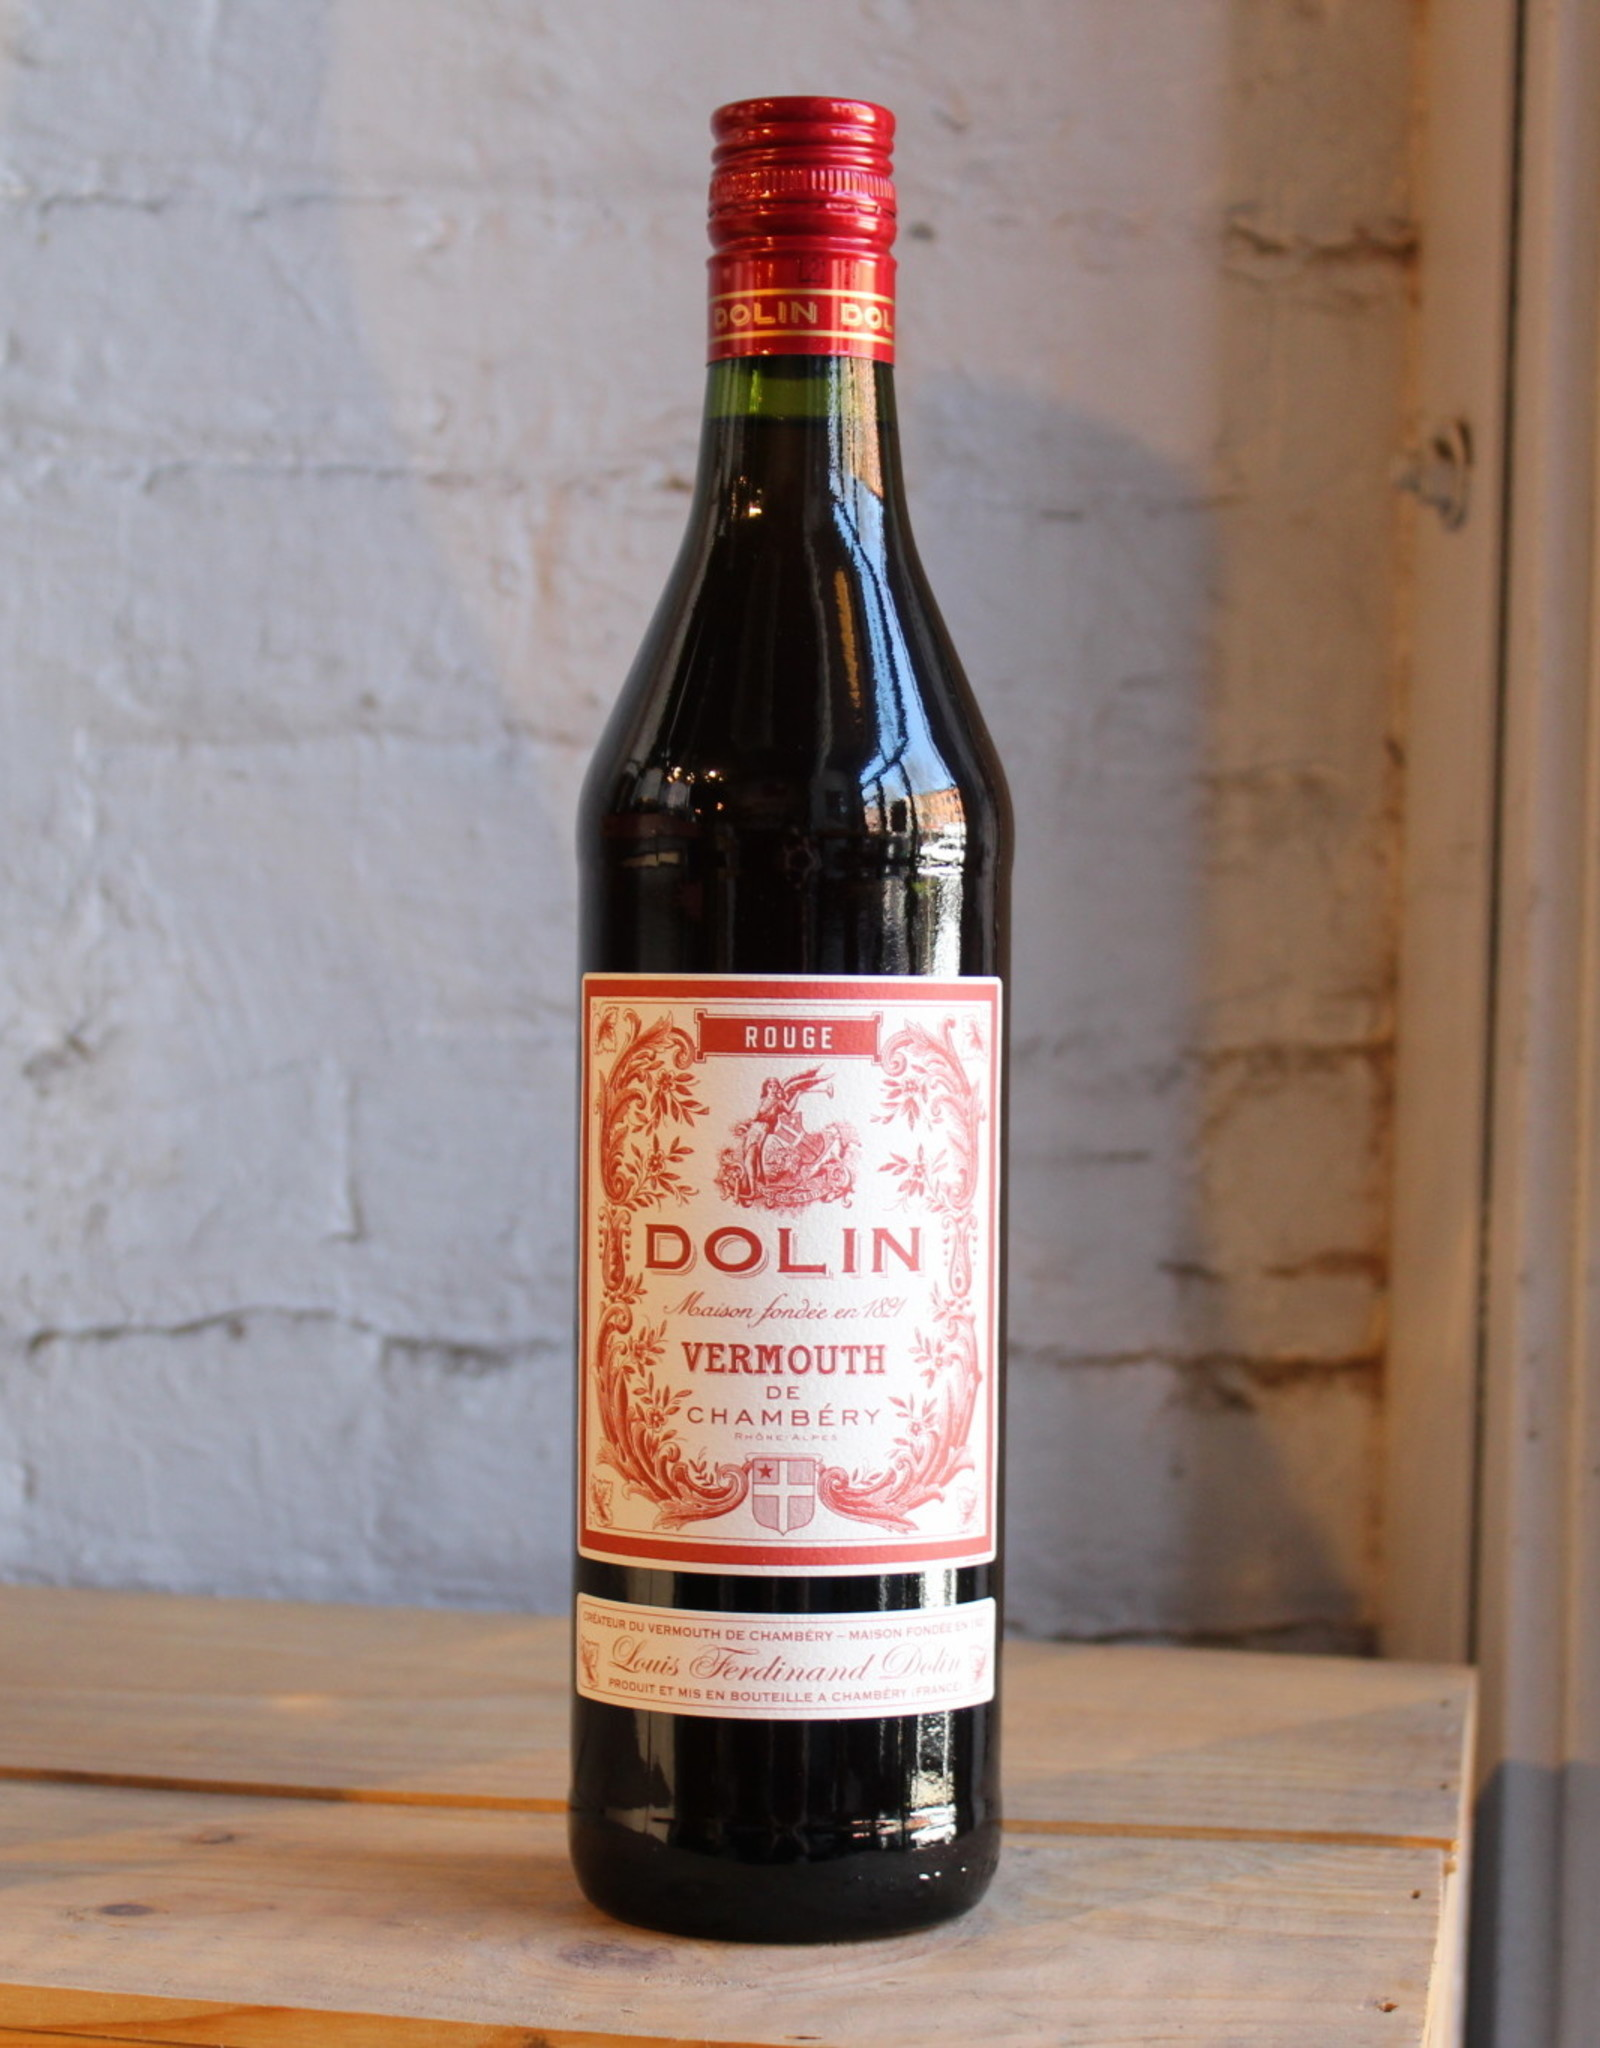 Dolin Vermouth de Chambery Rouge  - Savoie, France (750ml)